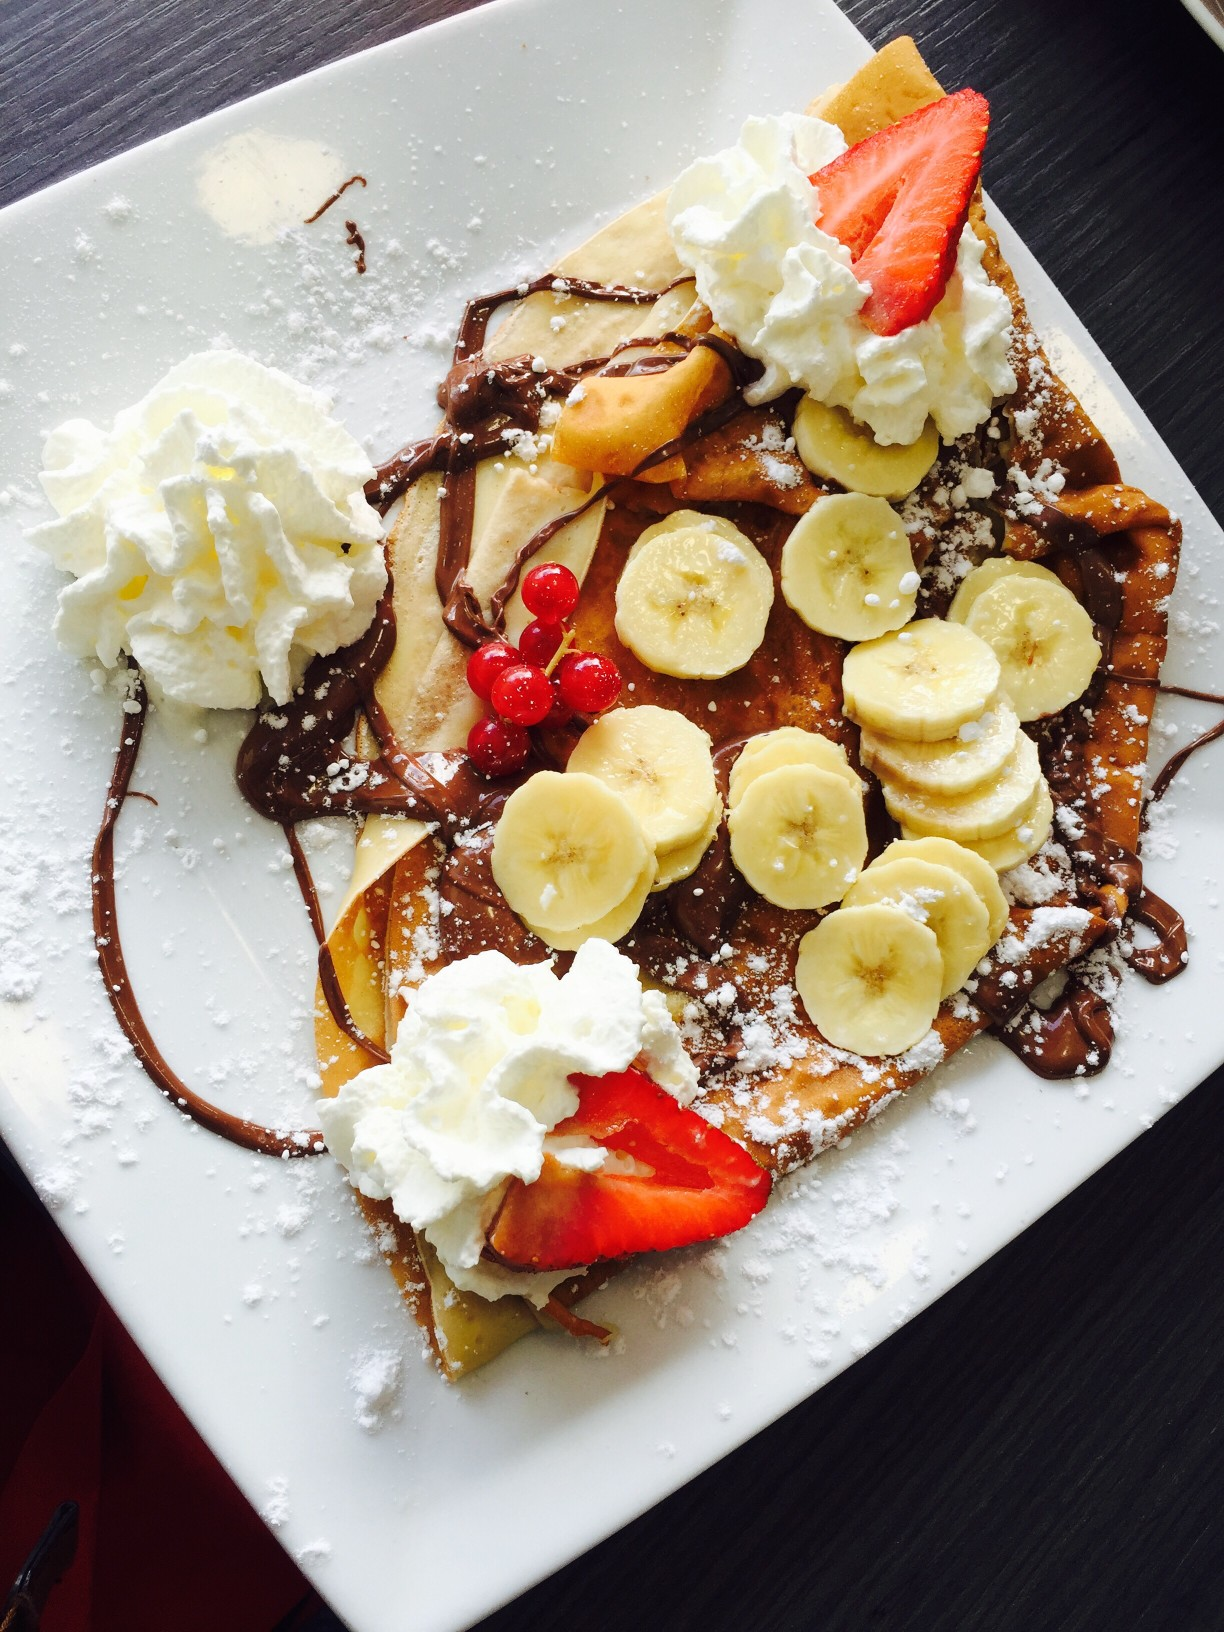 apartments in clarendon strawberry banana chocolate crepe